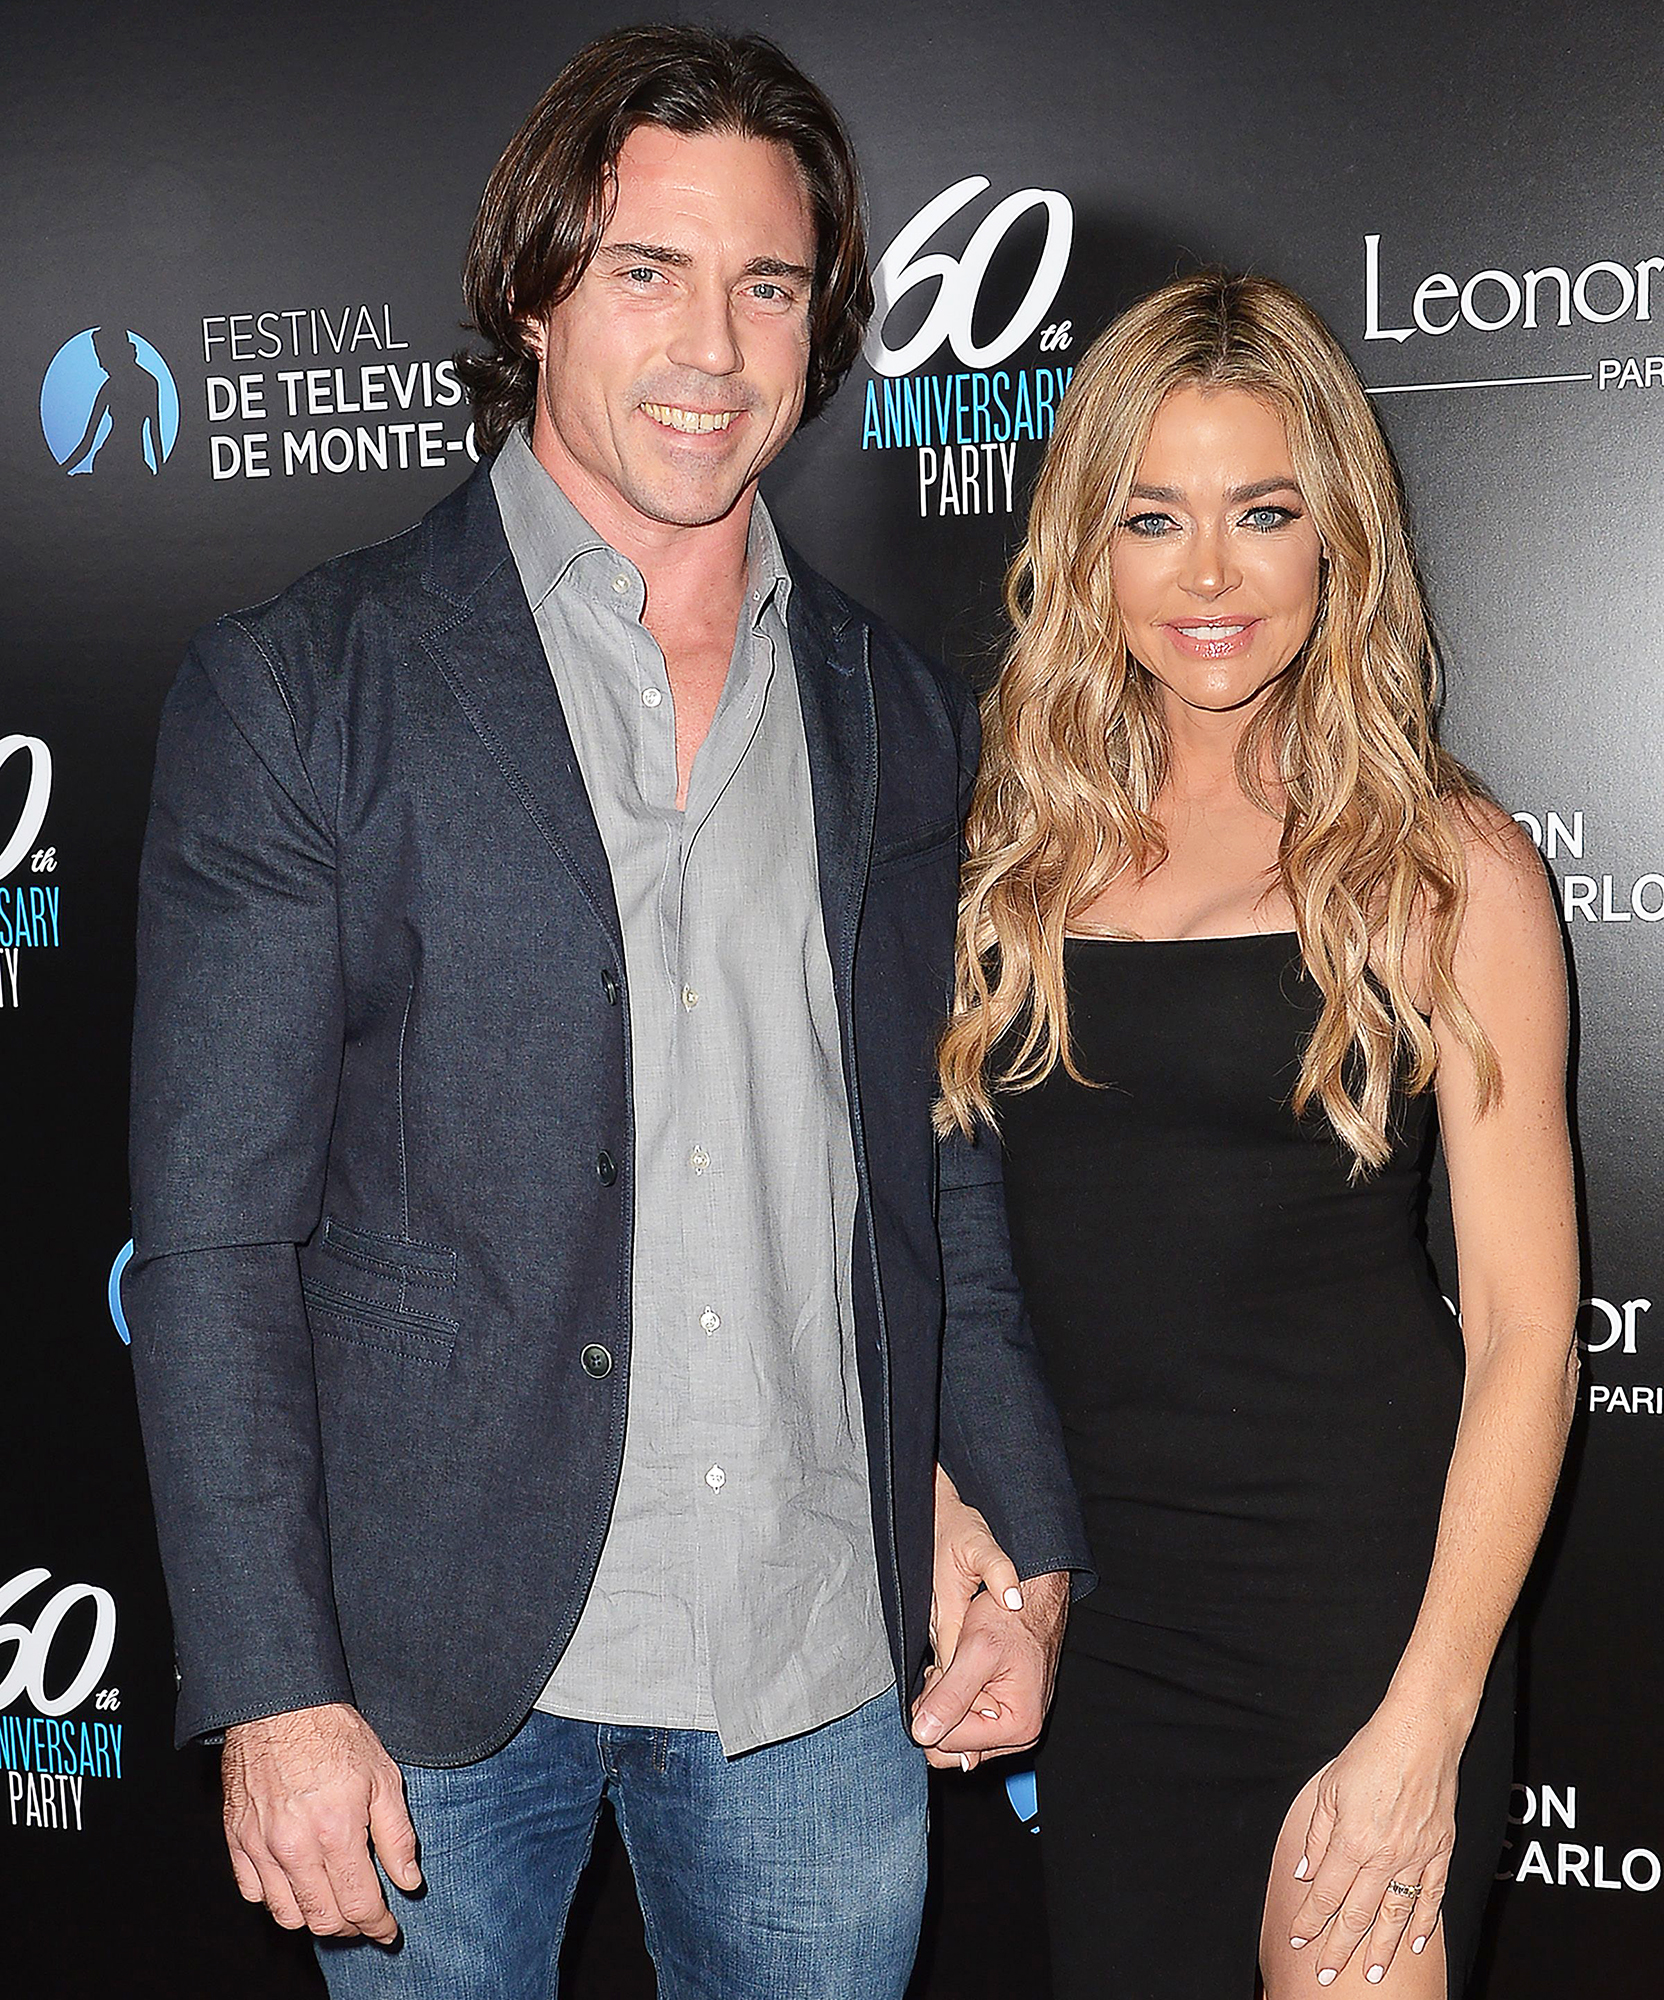 Aaron Phypers and Denise Richards attend the Monte-Carlo Television Festival party Denise Richards Daughter Eloise Learns How to Say Dad Just Before Fathers Day